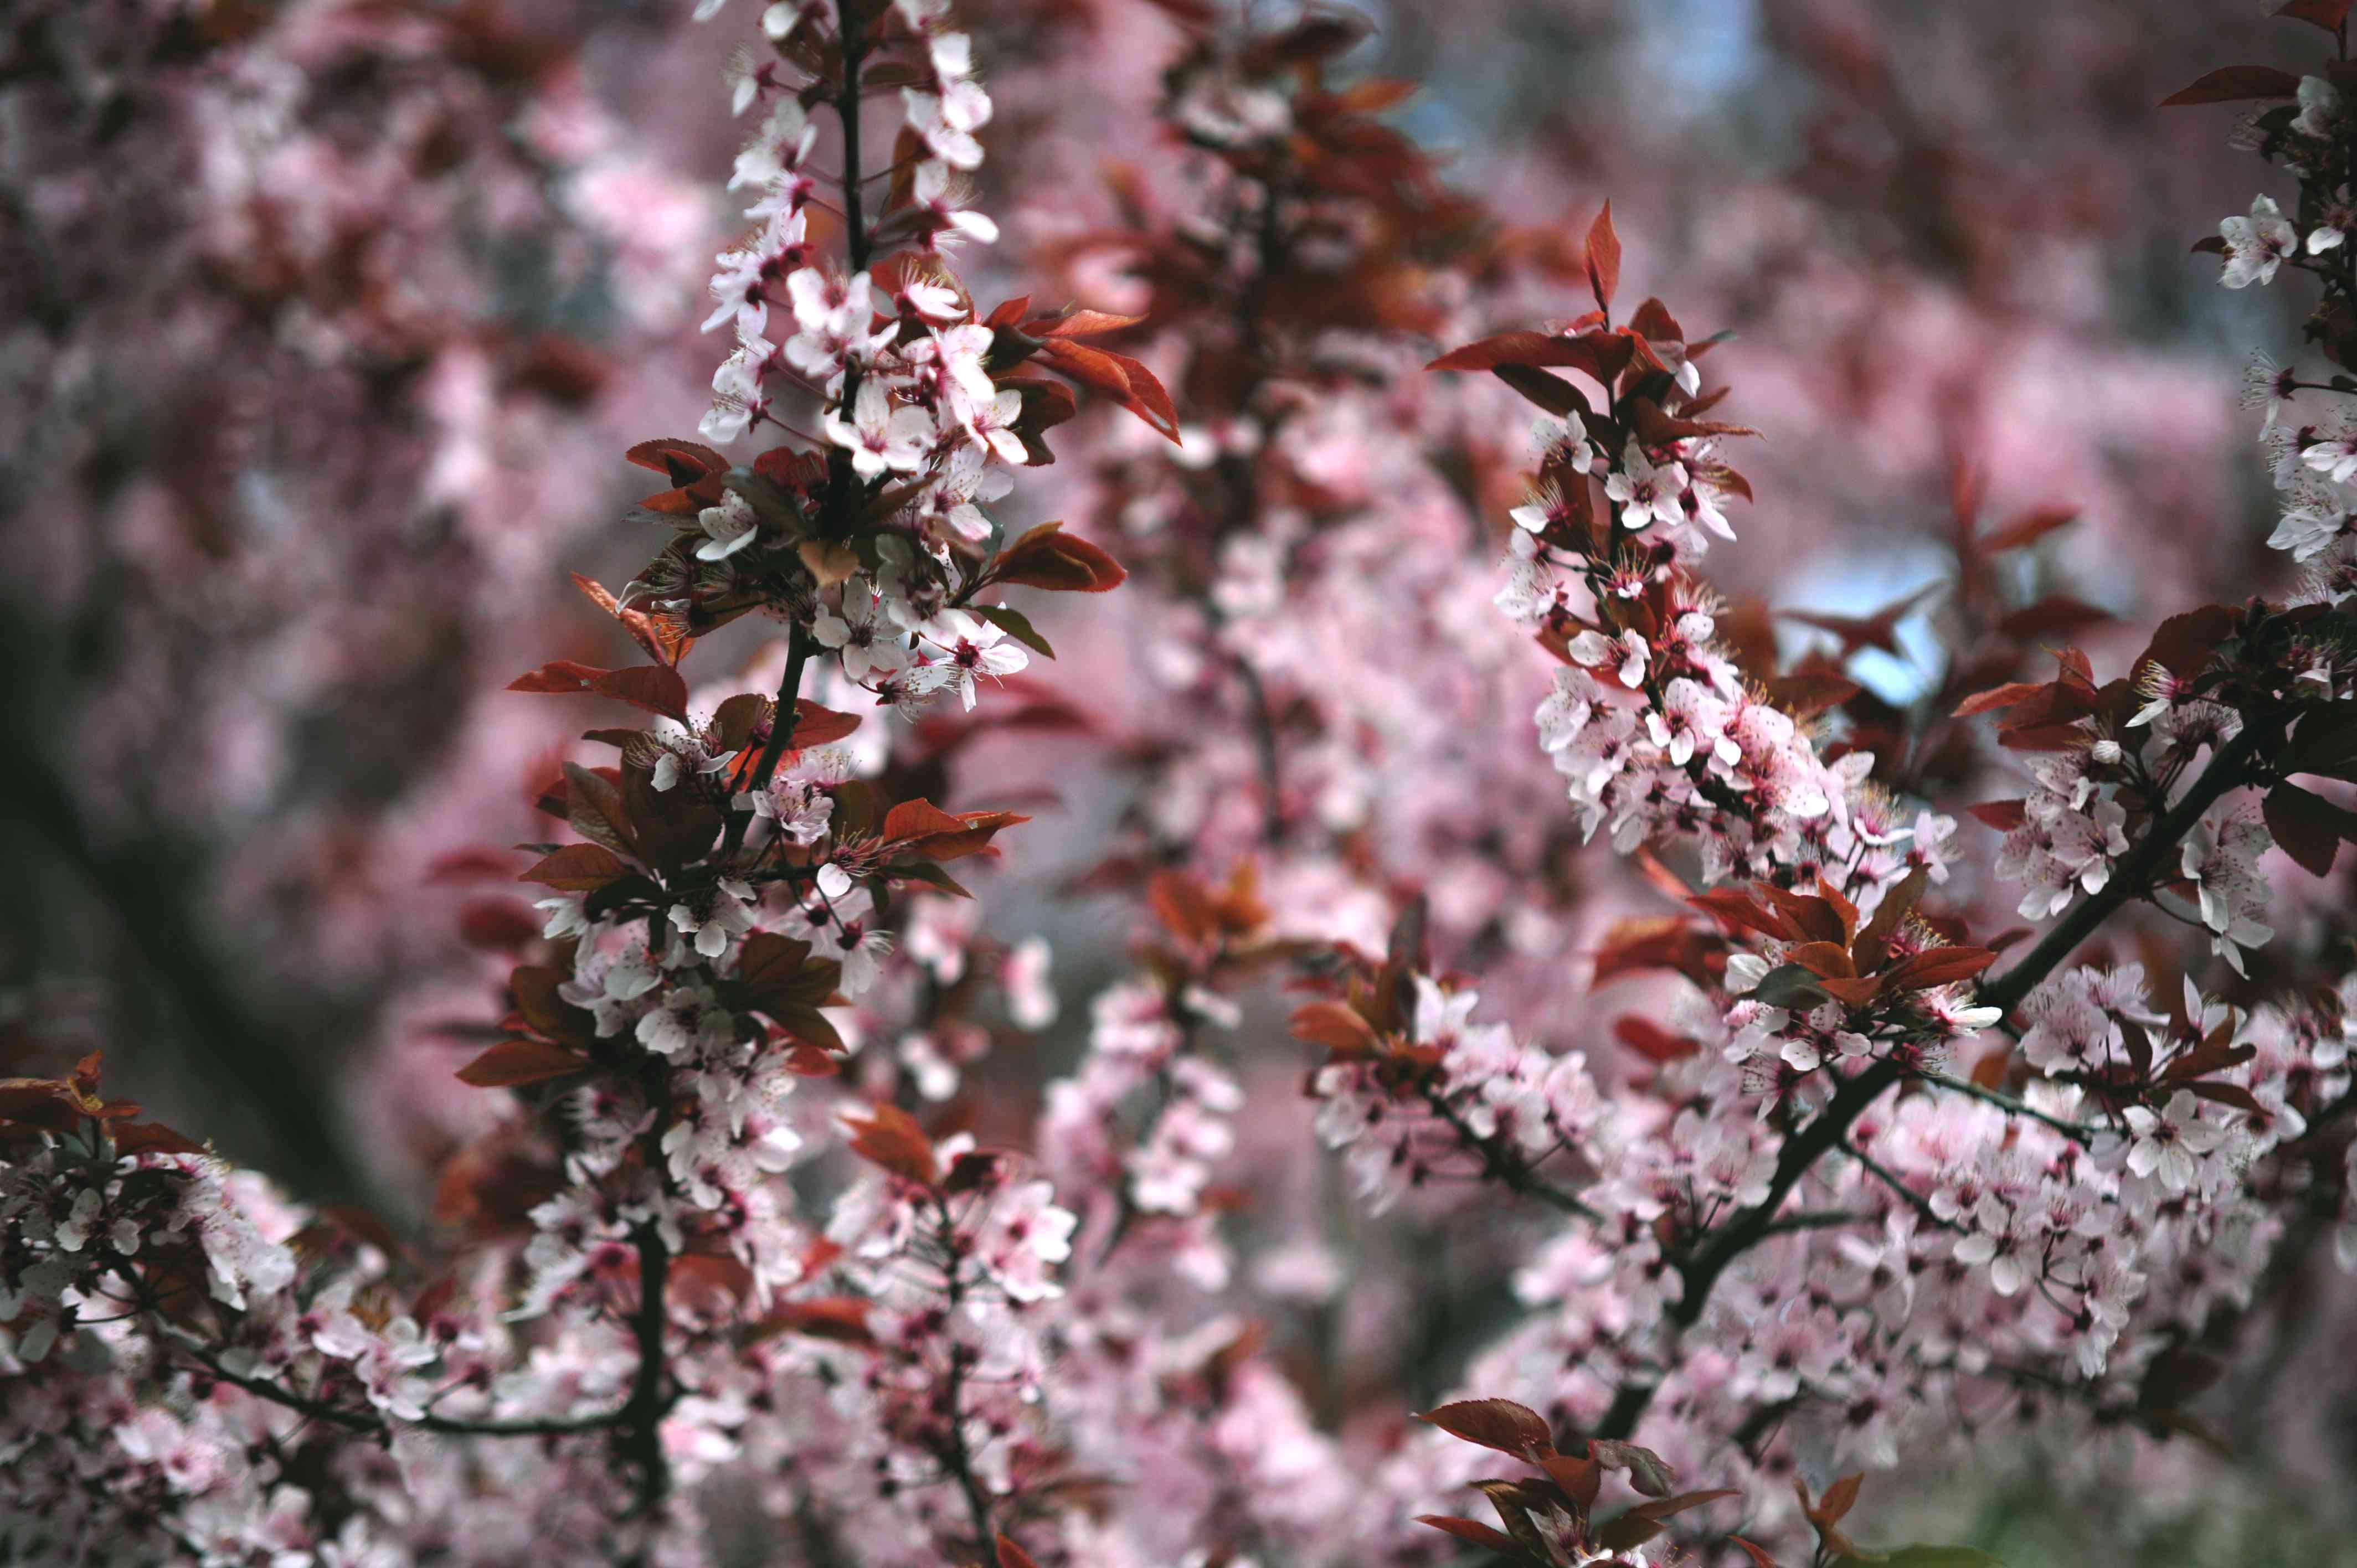 Purple leaf sand cherry tree branches with reddish-brown leaves and white and pink flowers